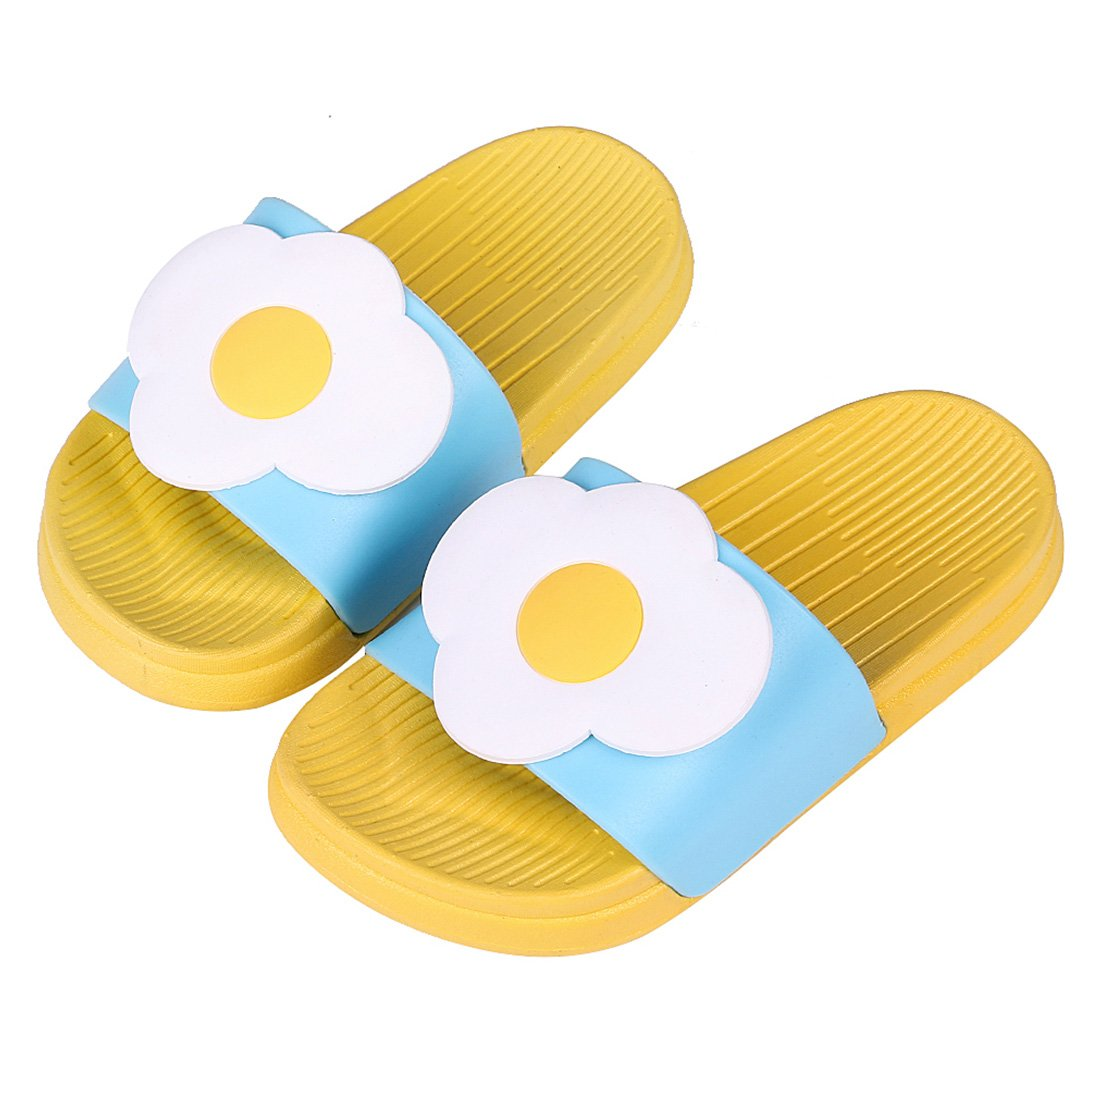 5be40f7dd Cute Bath Slippers Colorful Fruit Beach Sandals Shower Shoes for Adults and  Kids YL19